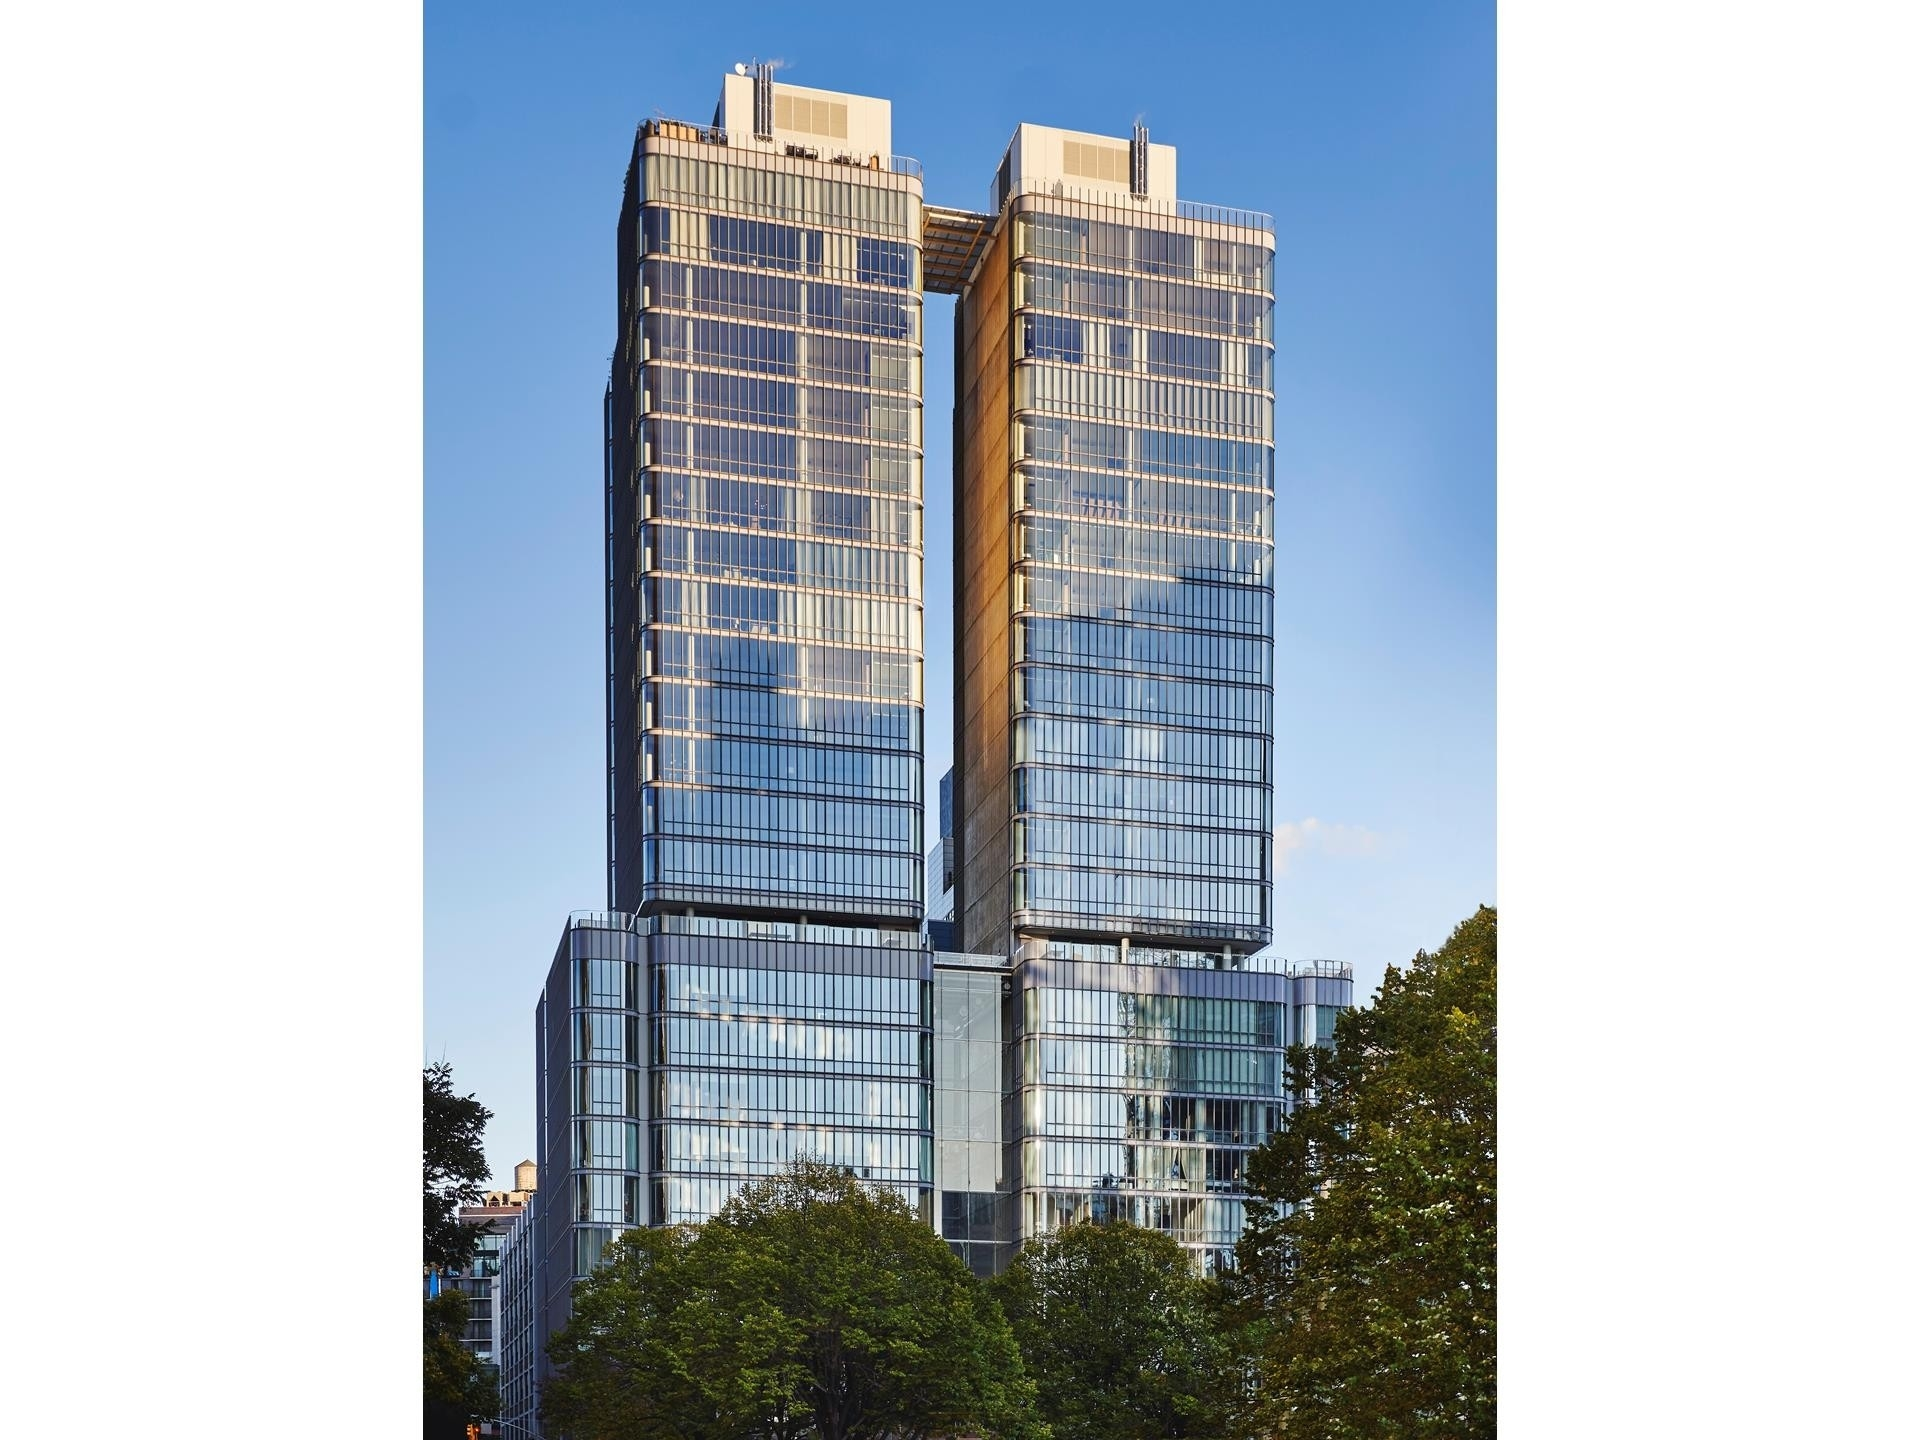 Property at 565 Broome St, S23A Hudson Square, New York, NY 10013